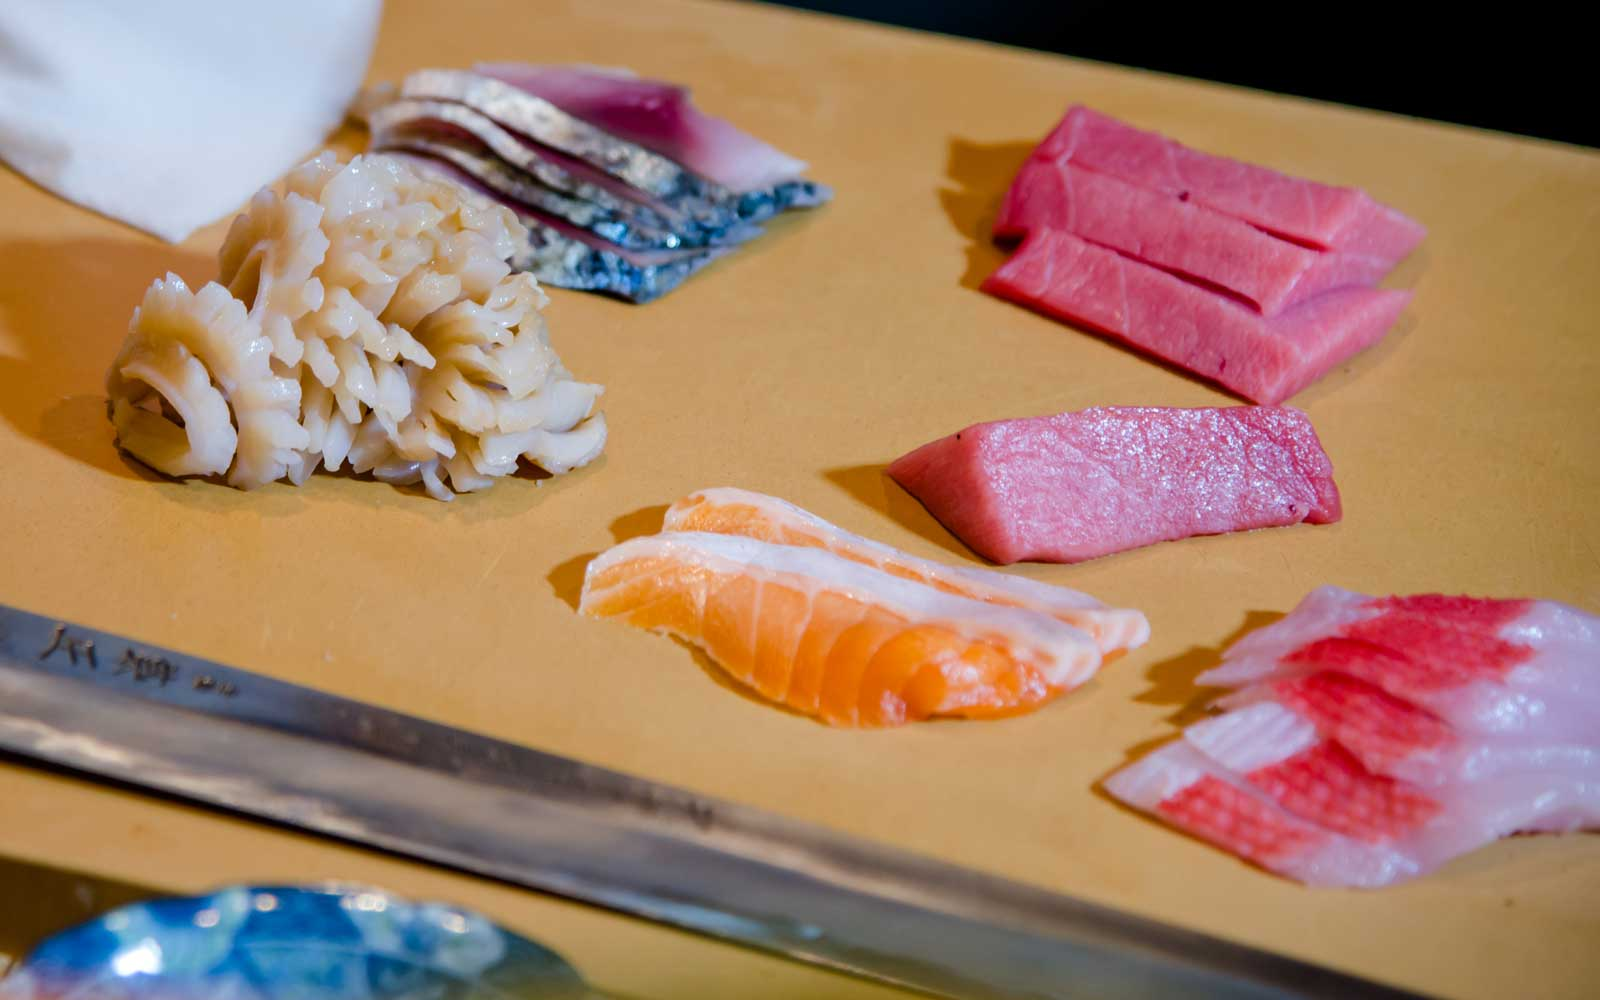 Fresh fish is used to prepare omakase dishes at Sushi by Bou Suite 1001.